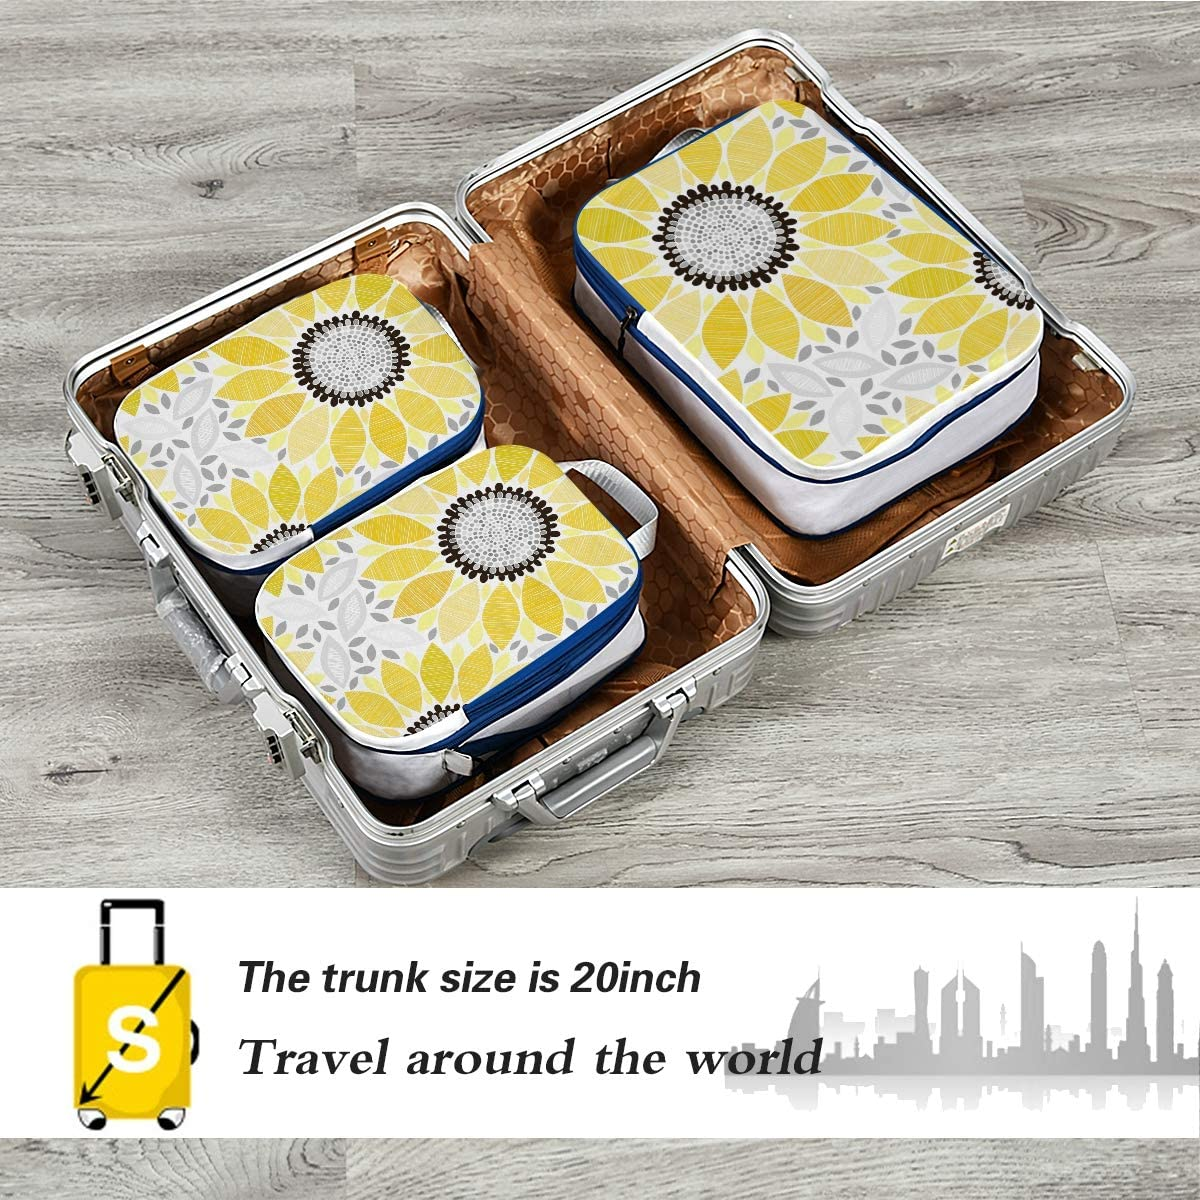 d Sunflowers 3 Set Packing Cubes,2 Various Sizes Travel Luggage Packing Organizers